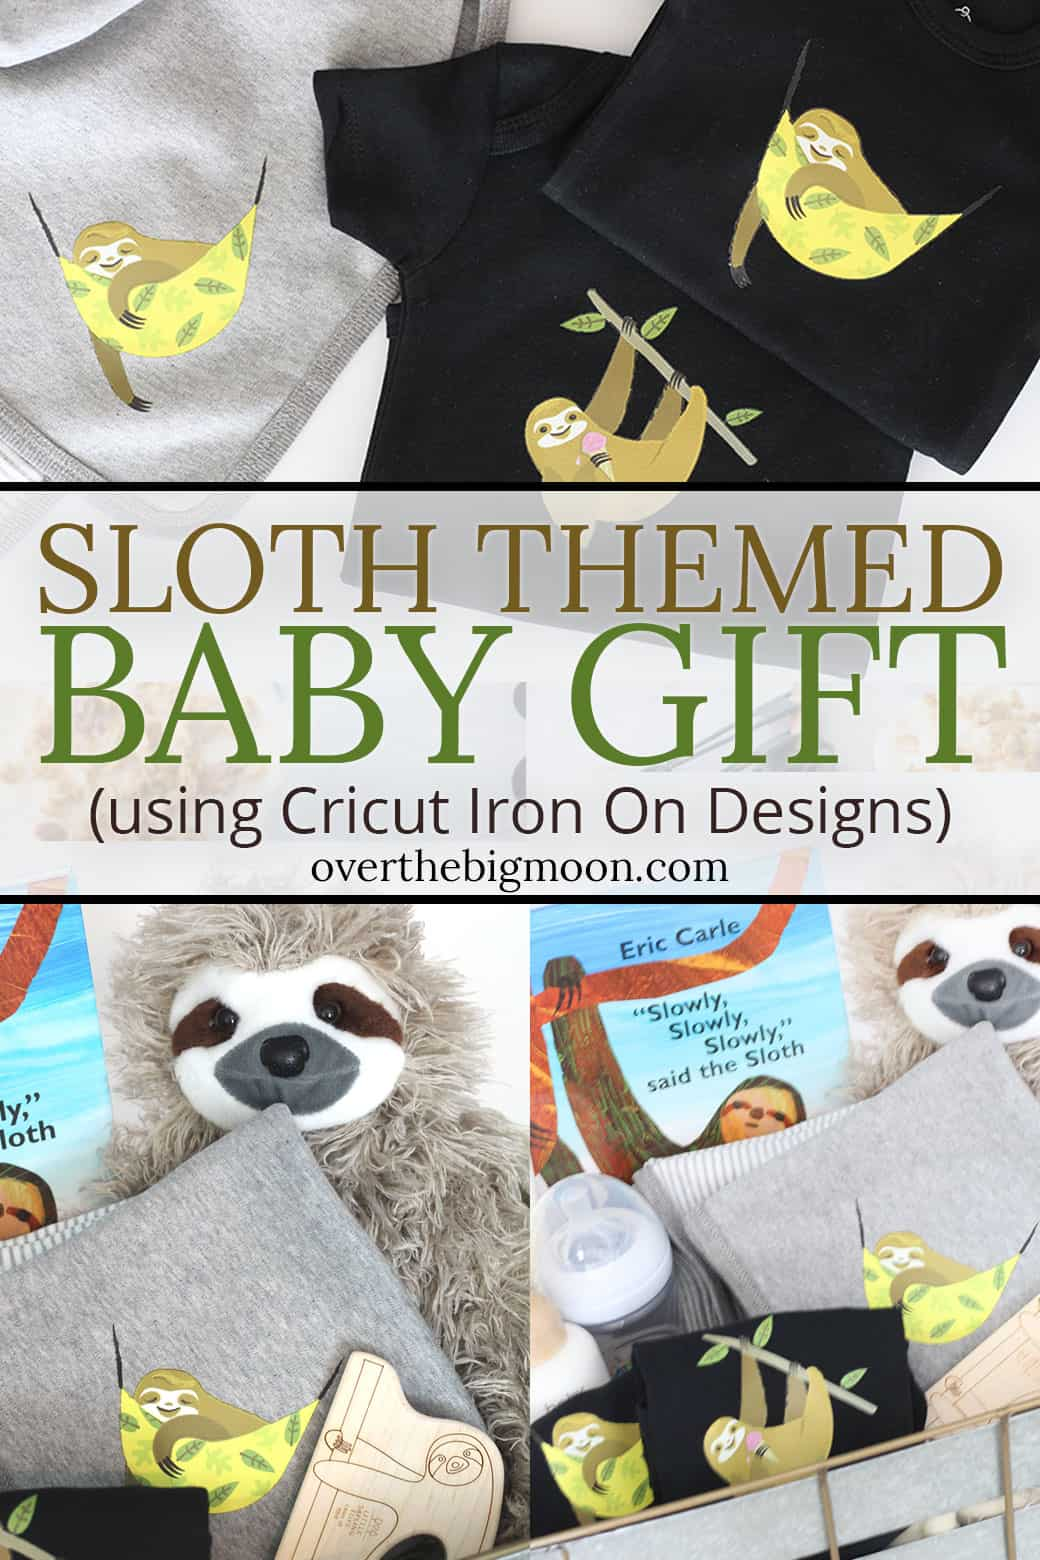 Sloth Themed Baby Gift using Cricut Iron On Designs! This is the CUTEST gift basket theme that is perfect for a boy or girl! Plus, the DIY onesie and blankets are SO simple to make!